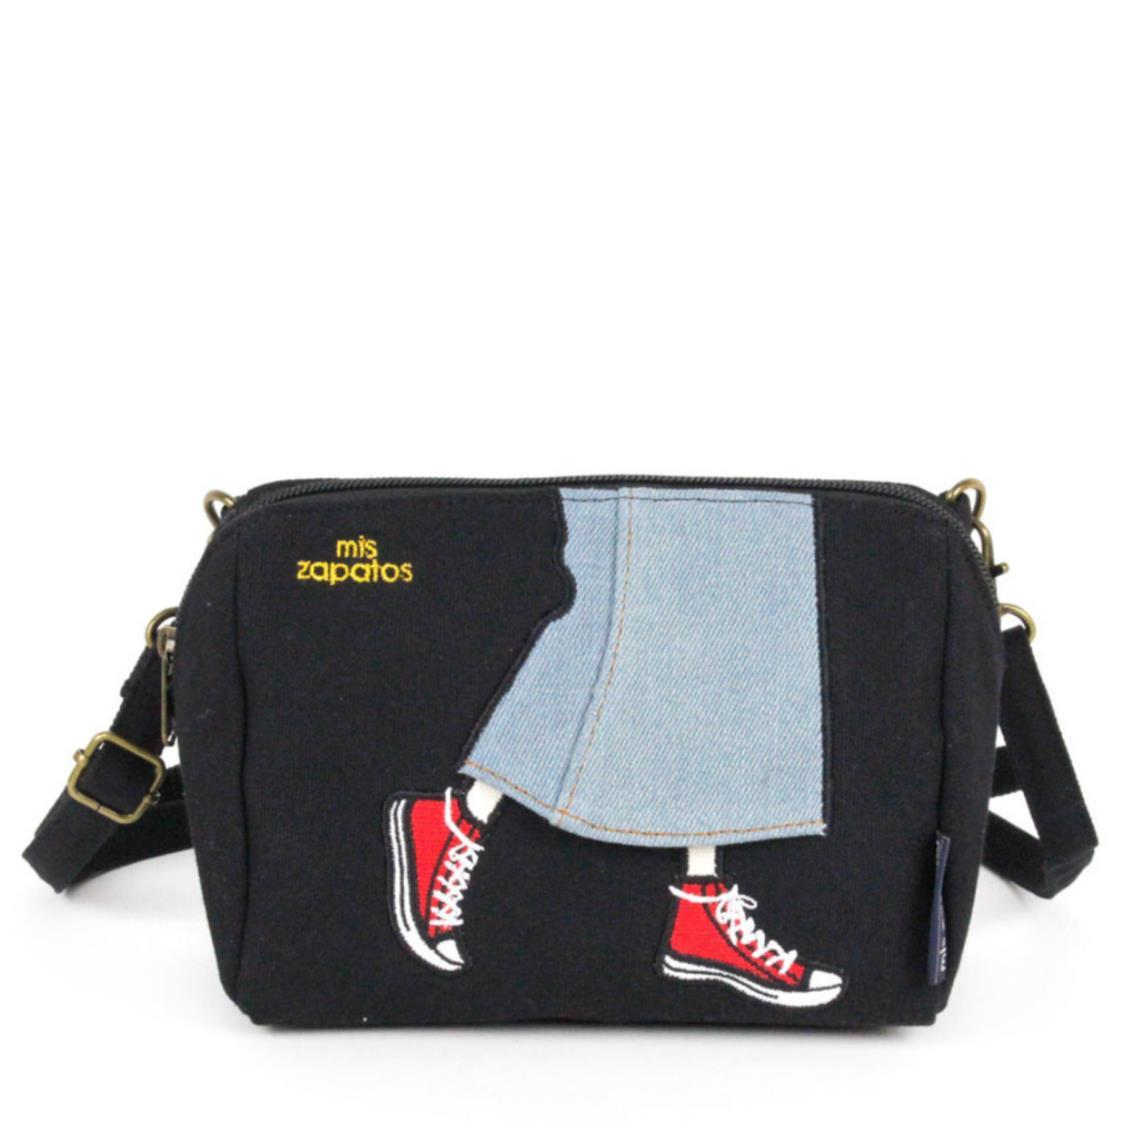 2-Way Use Jeans Skirt with Sneakers Slingbag Black